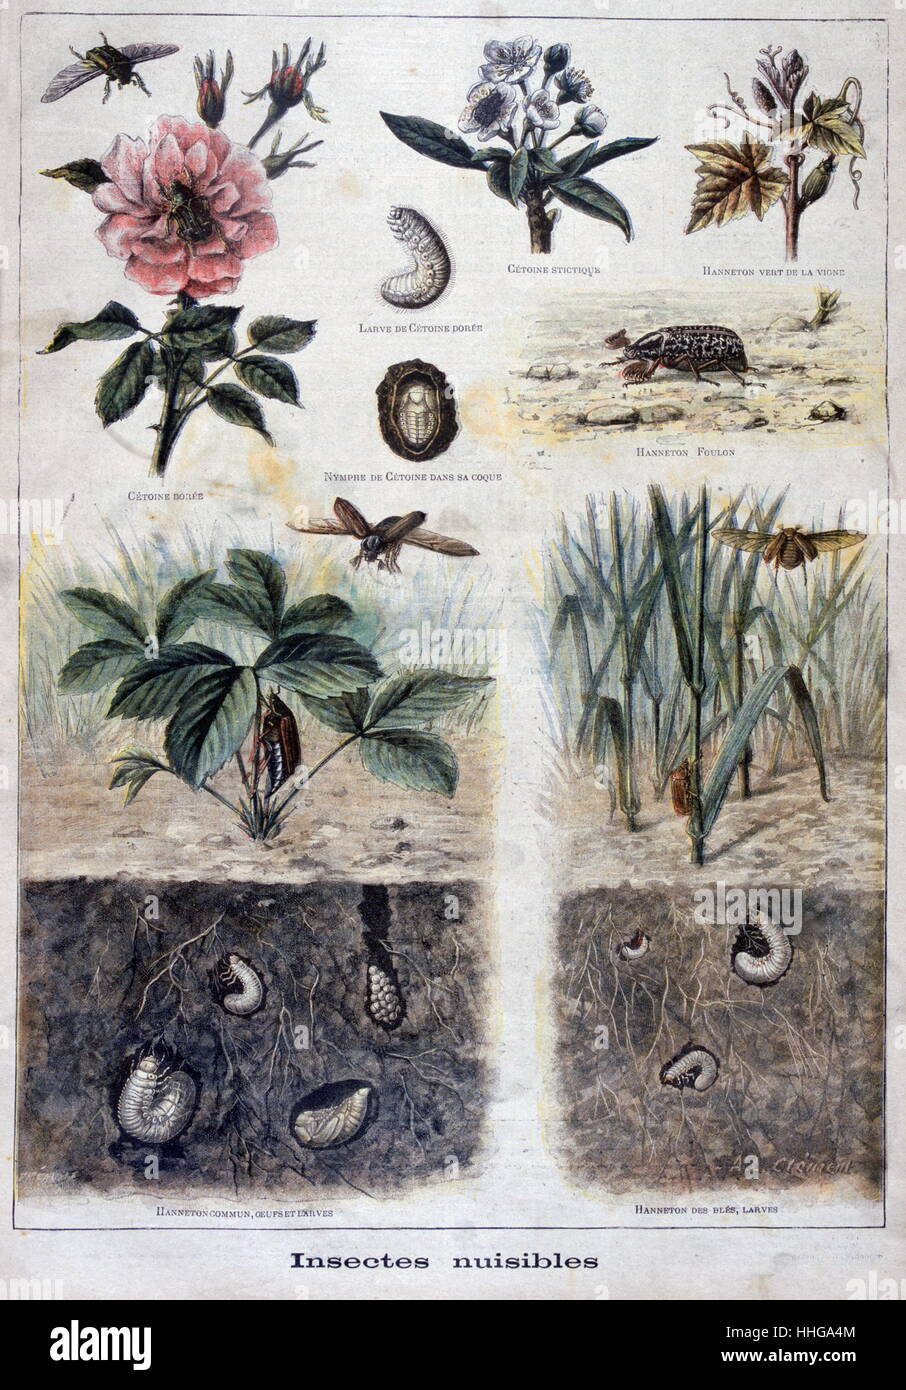 Illustration depicting harmful insects. 1897 - Stock Image